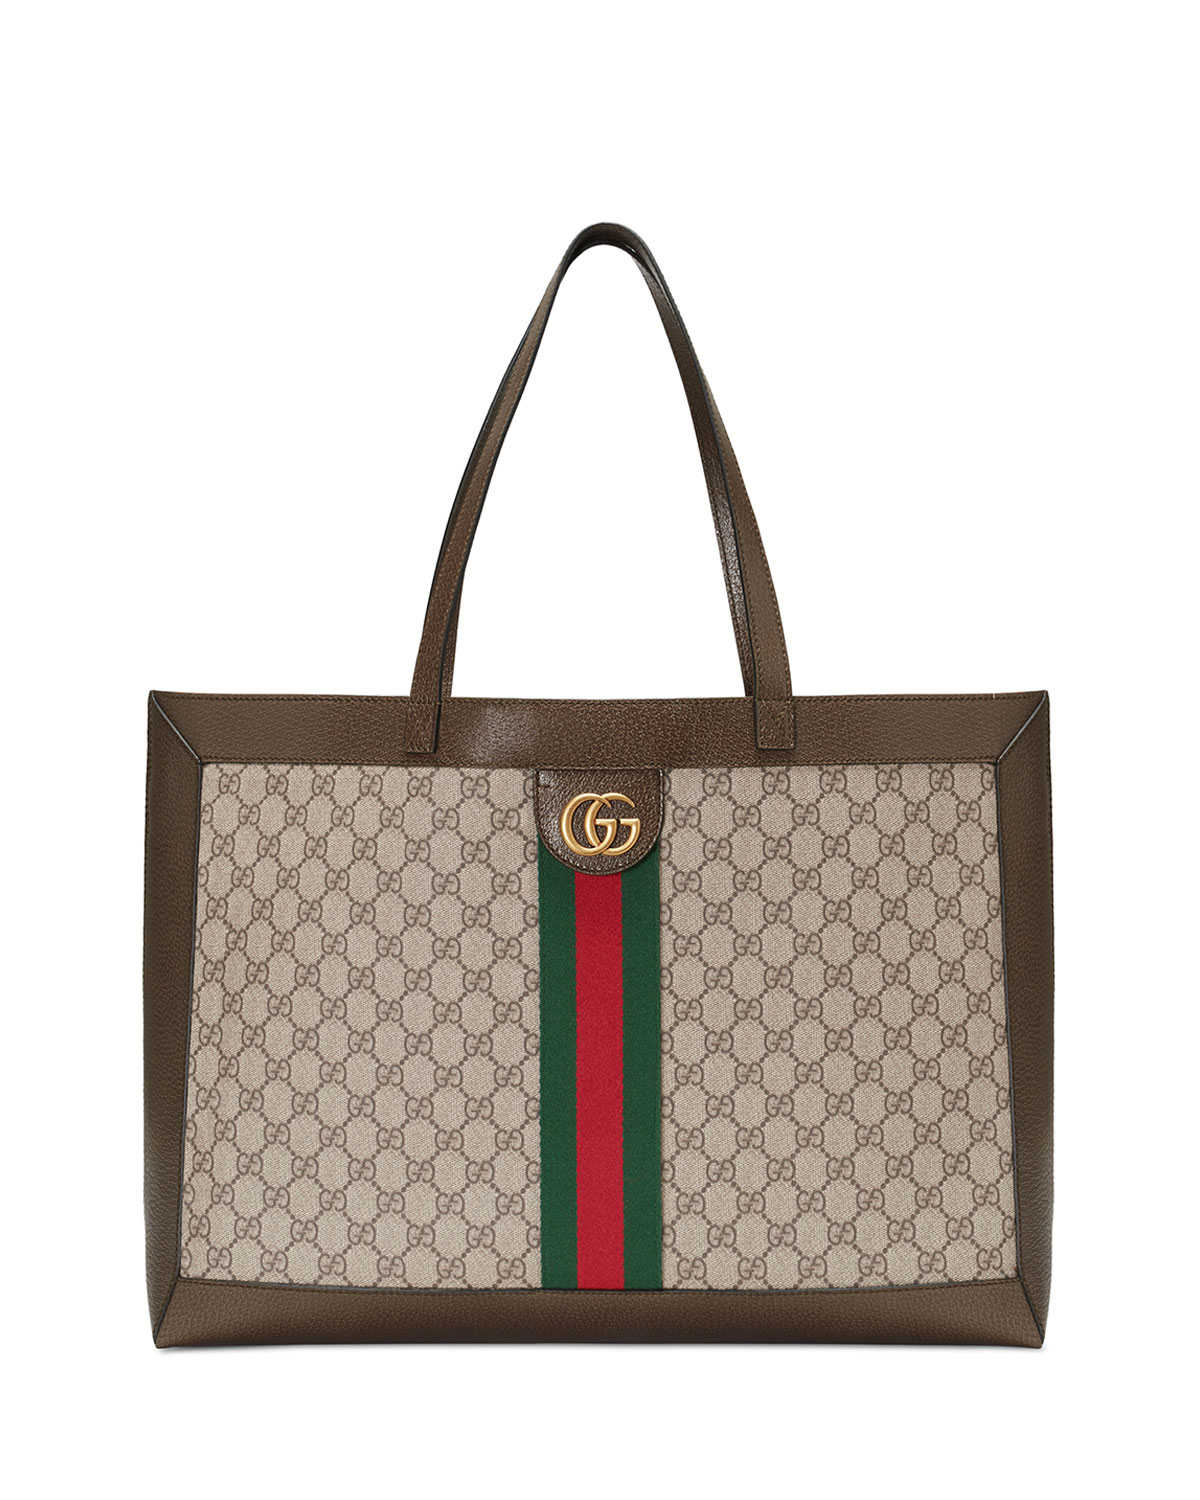 63091a27c152 Gucci Ophidia Soft GG Supreme Canvas Tote Bag with Web